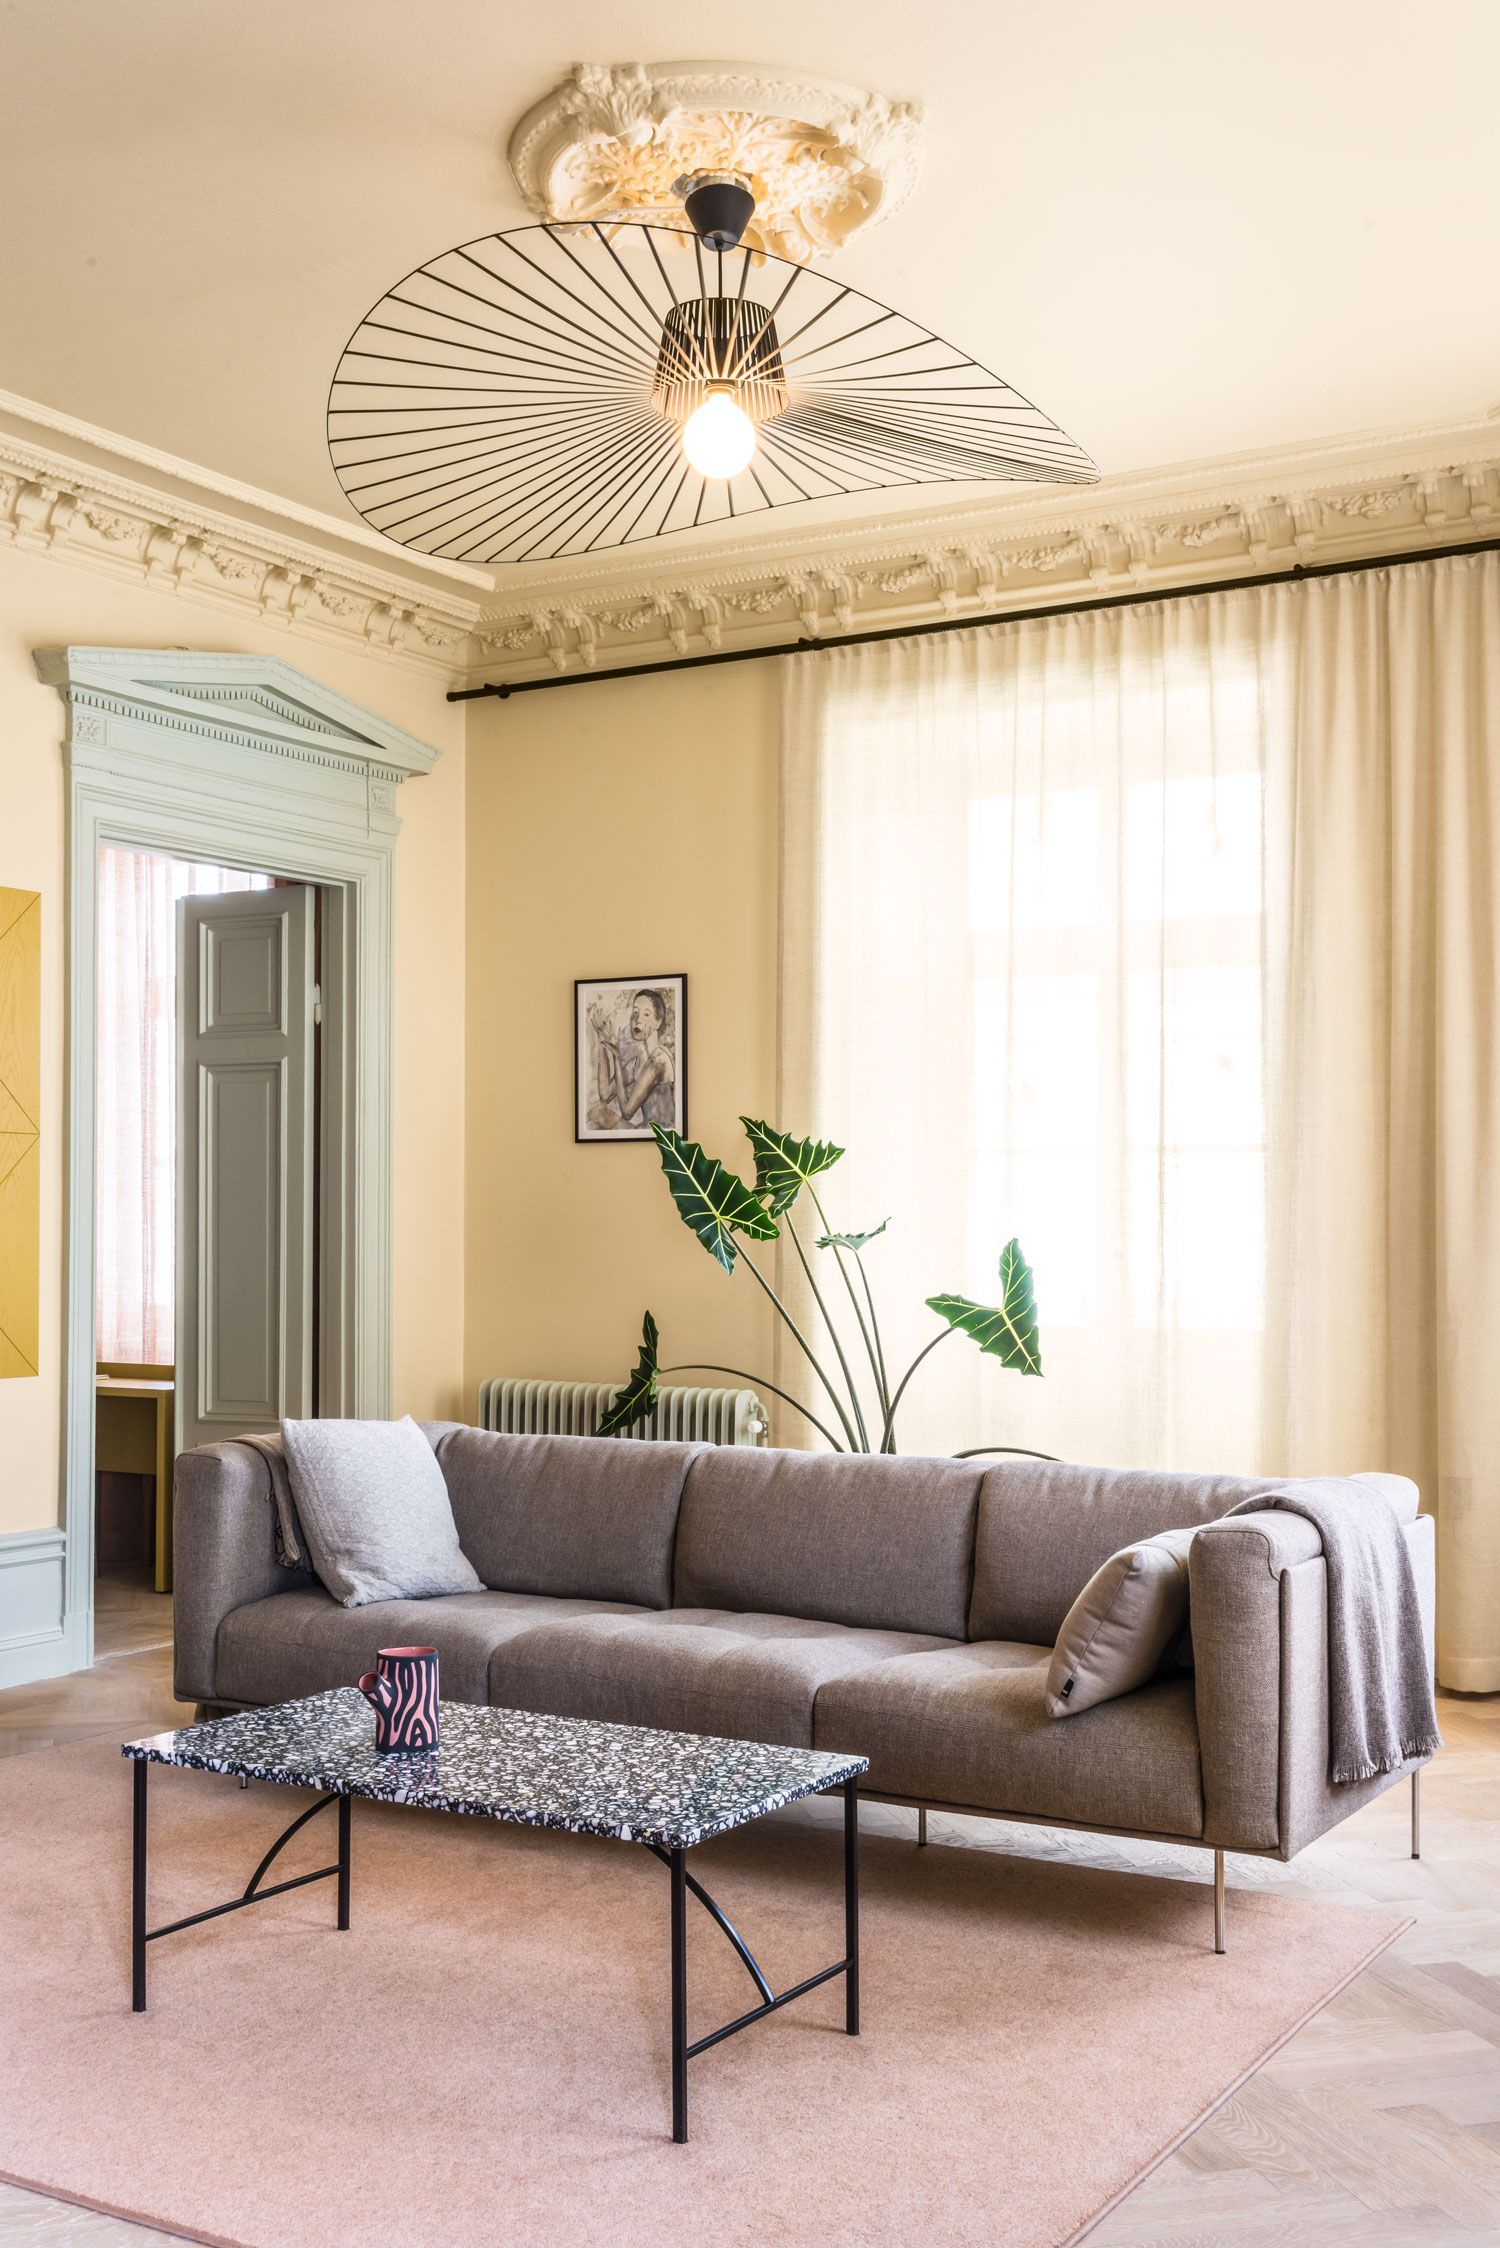 Exceptional Old Office In Stockholm Gets Transformed Into A Scandinavian Home_3  Old Office In Stockholm Gets Transformed Into A Scandinavian Home_3